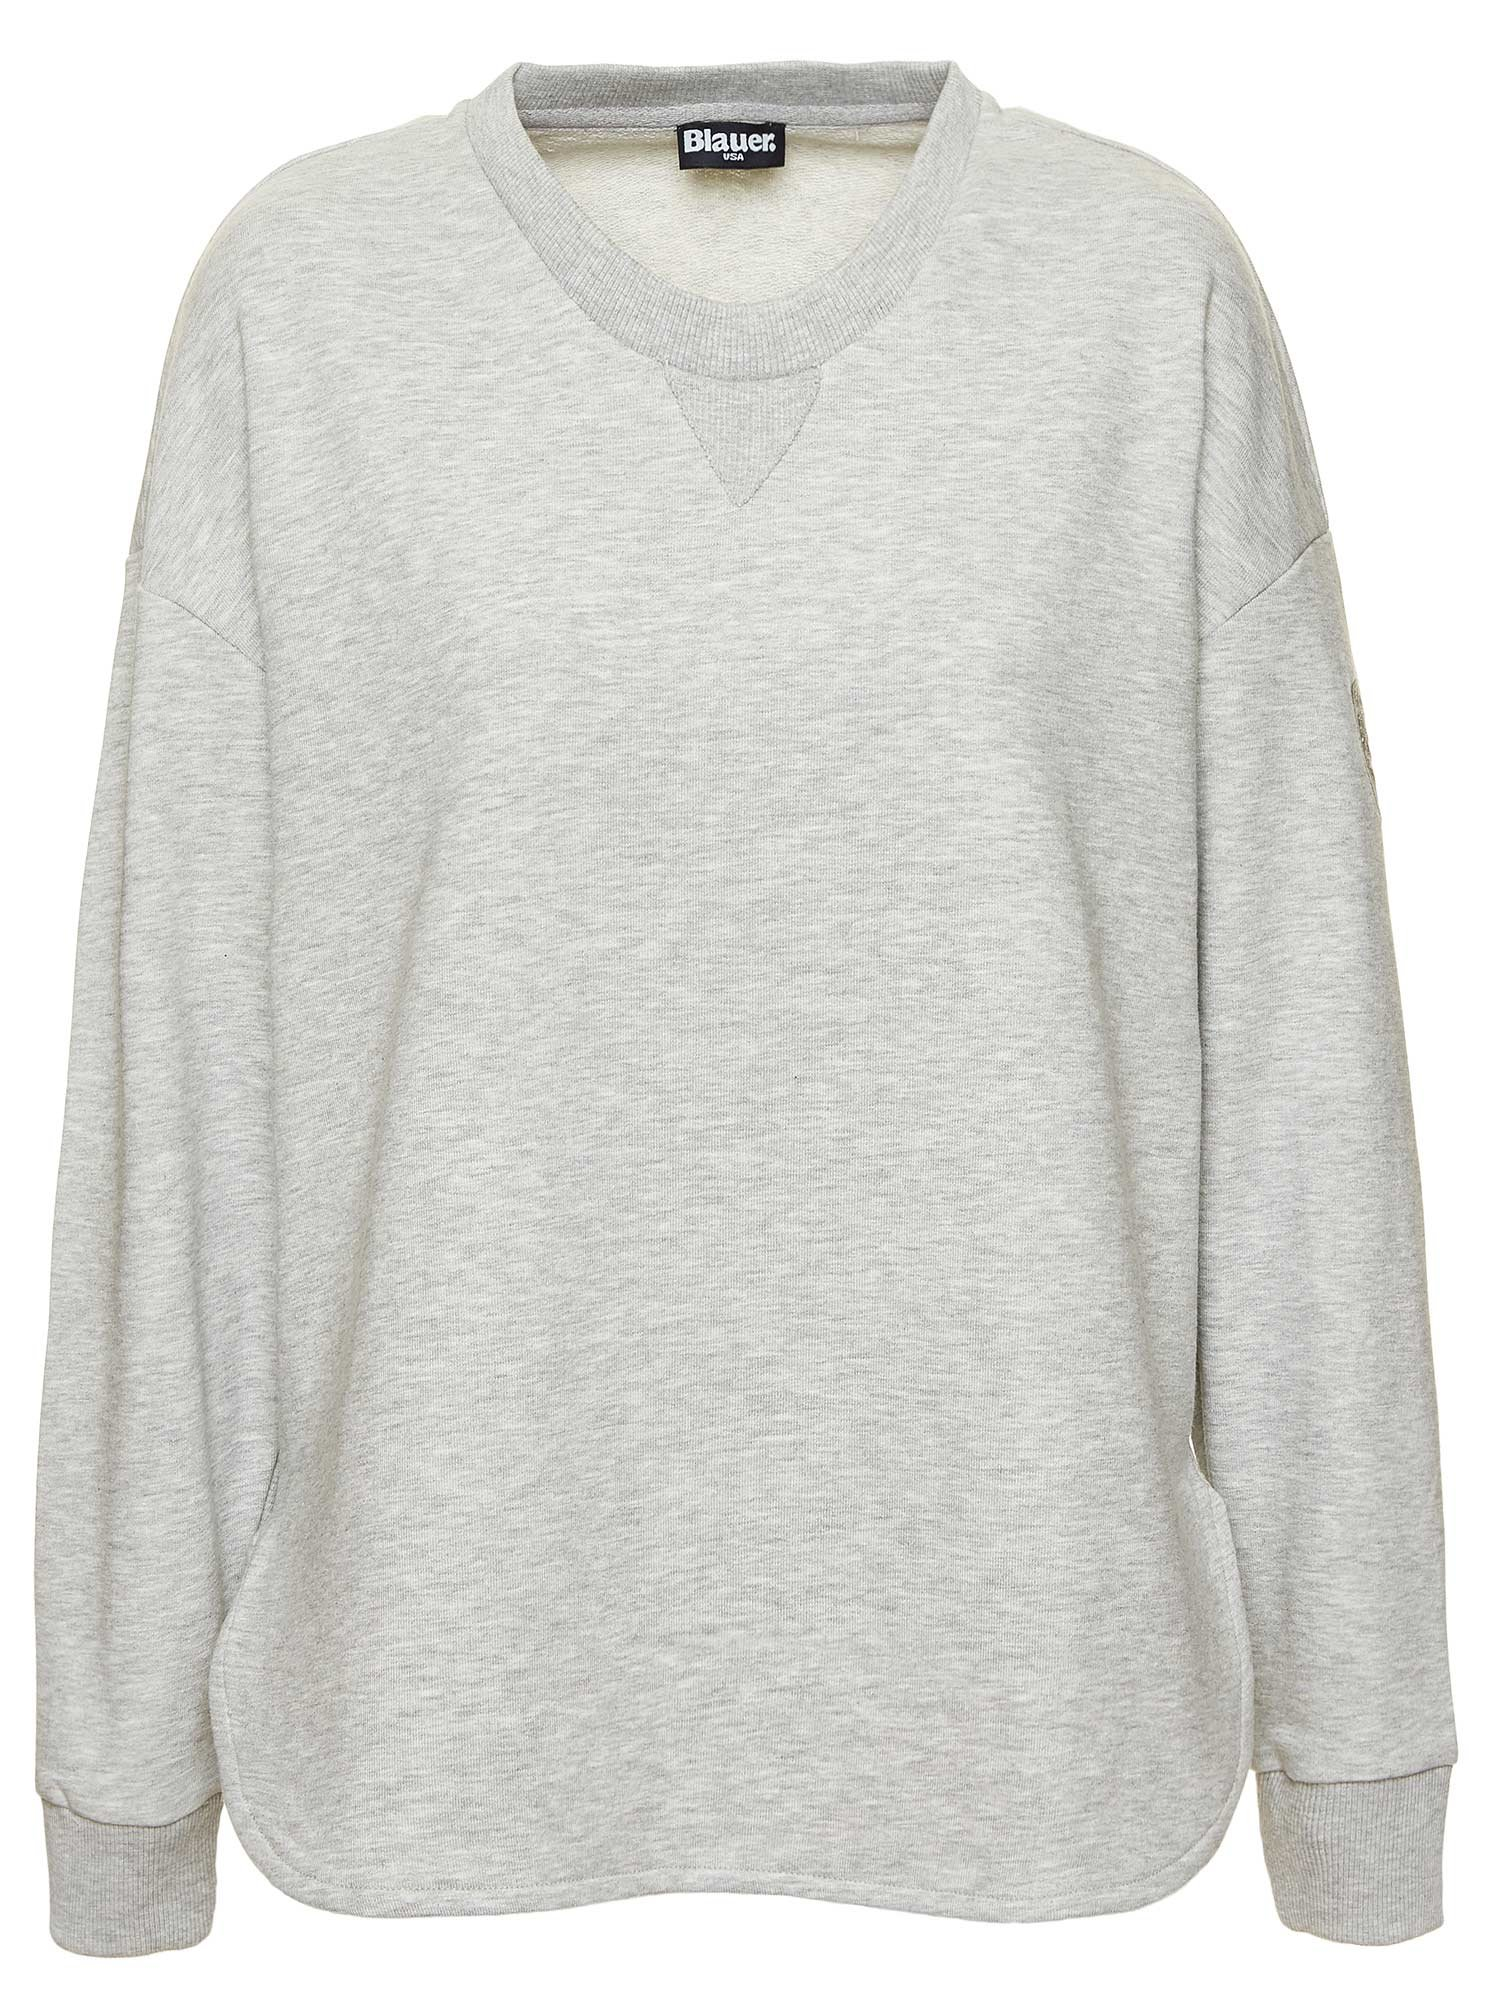 Blauer - MELANGE CREW NECK SWEATSHIRT - Light Grey - Blauer